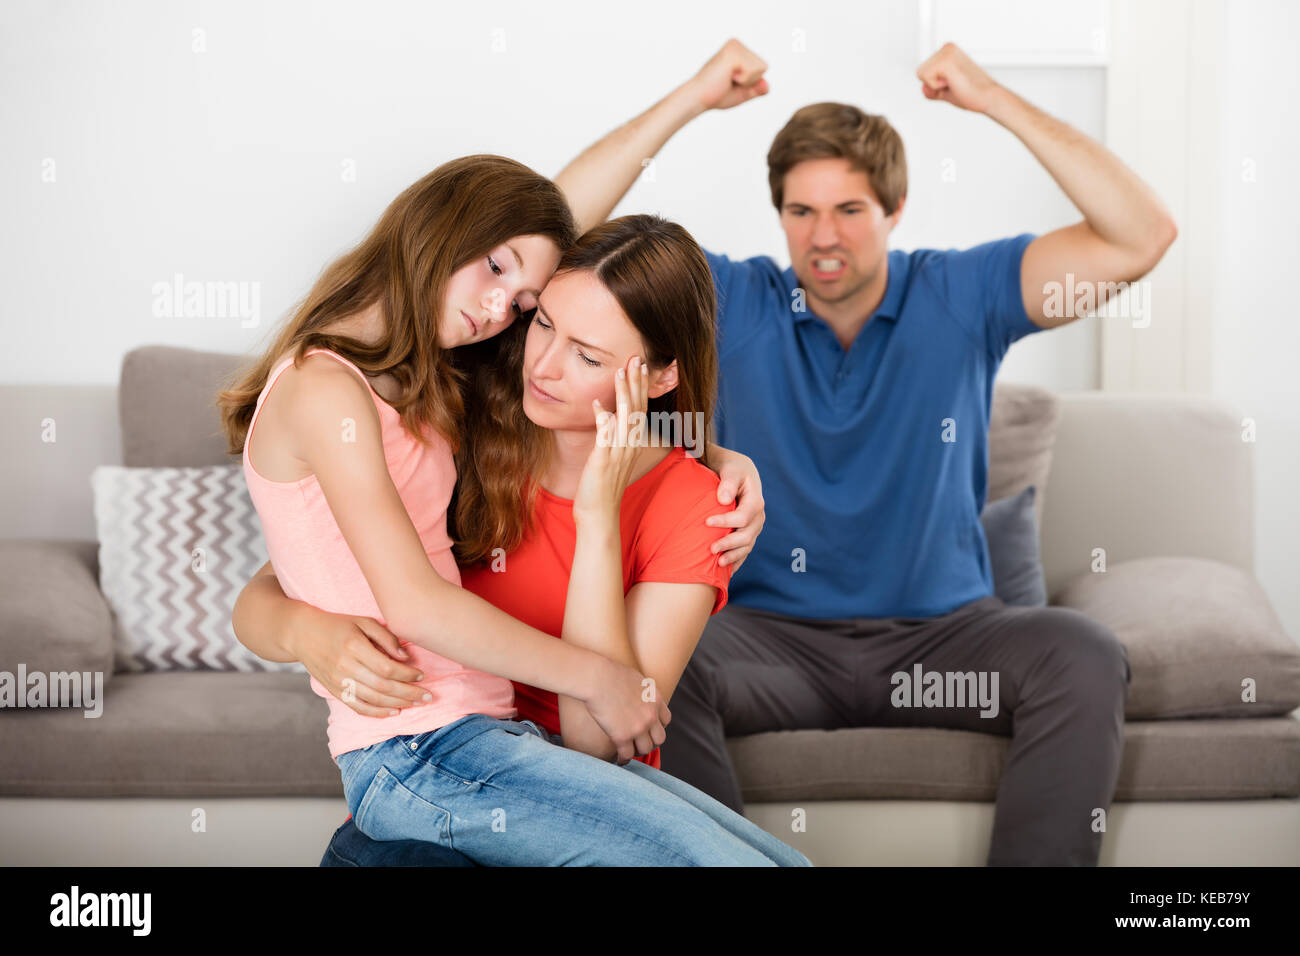 Depressed Mother And Daughter In Front Of Violent Father Sitting On Sofa - Stock Image